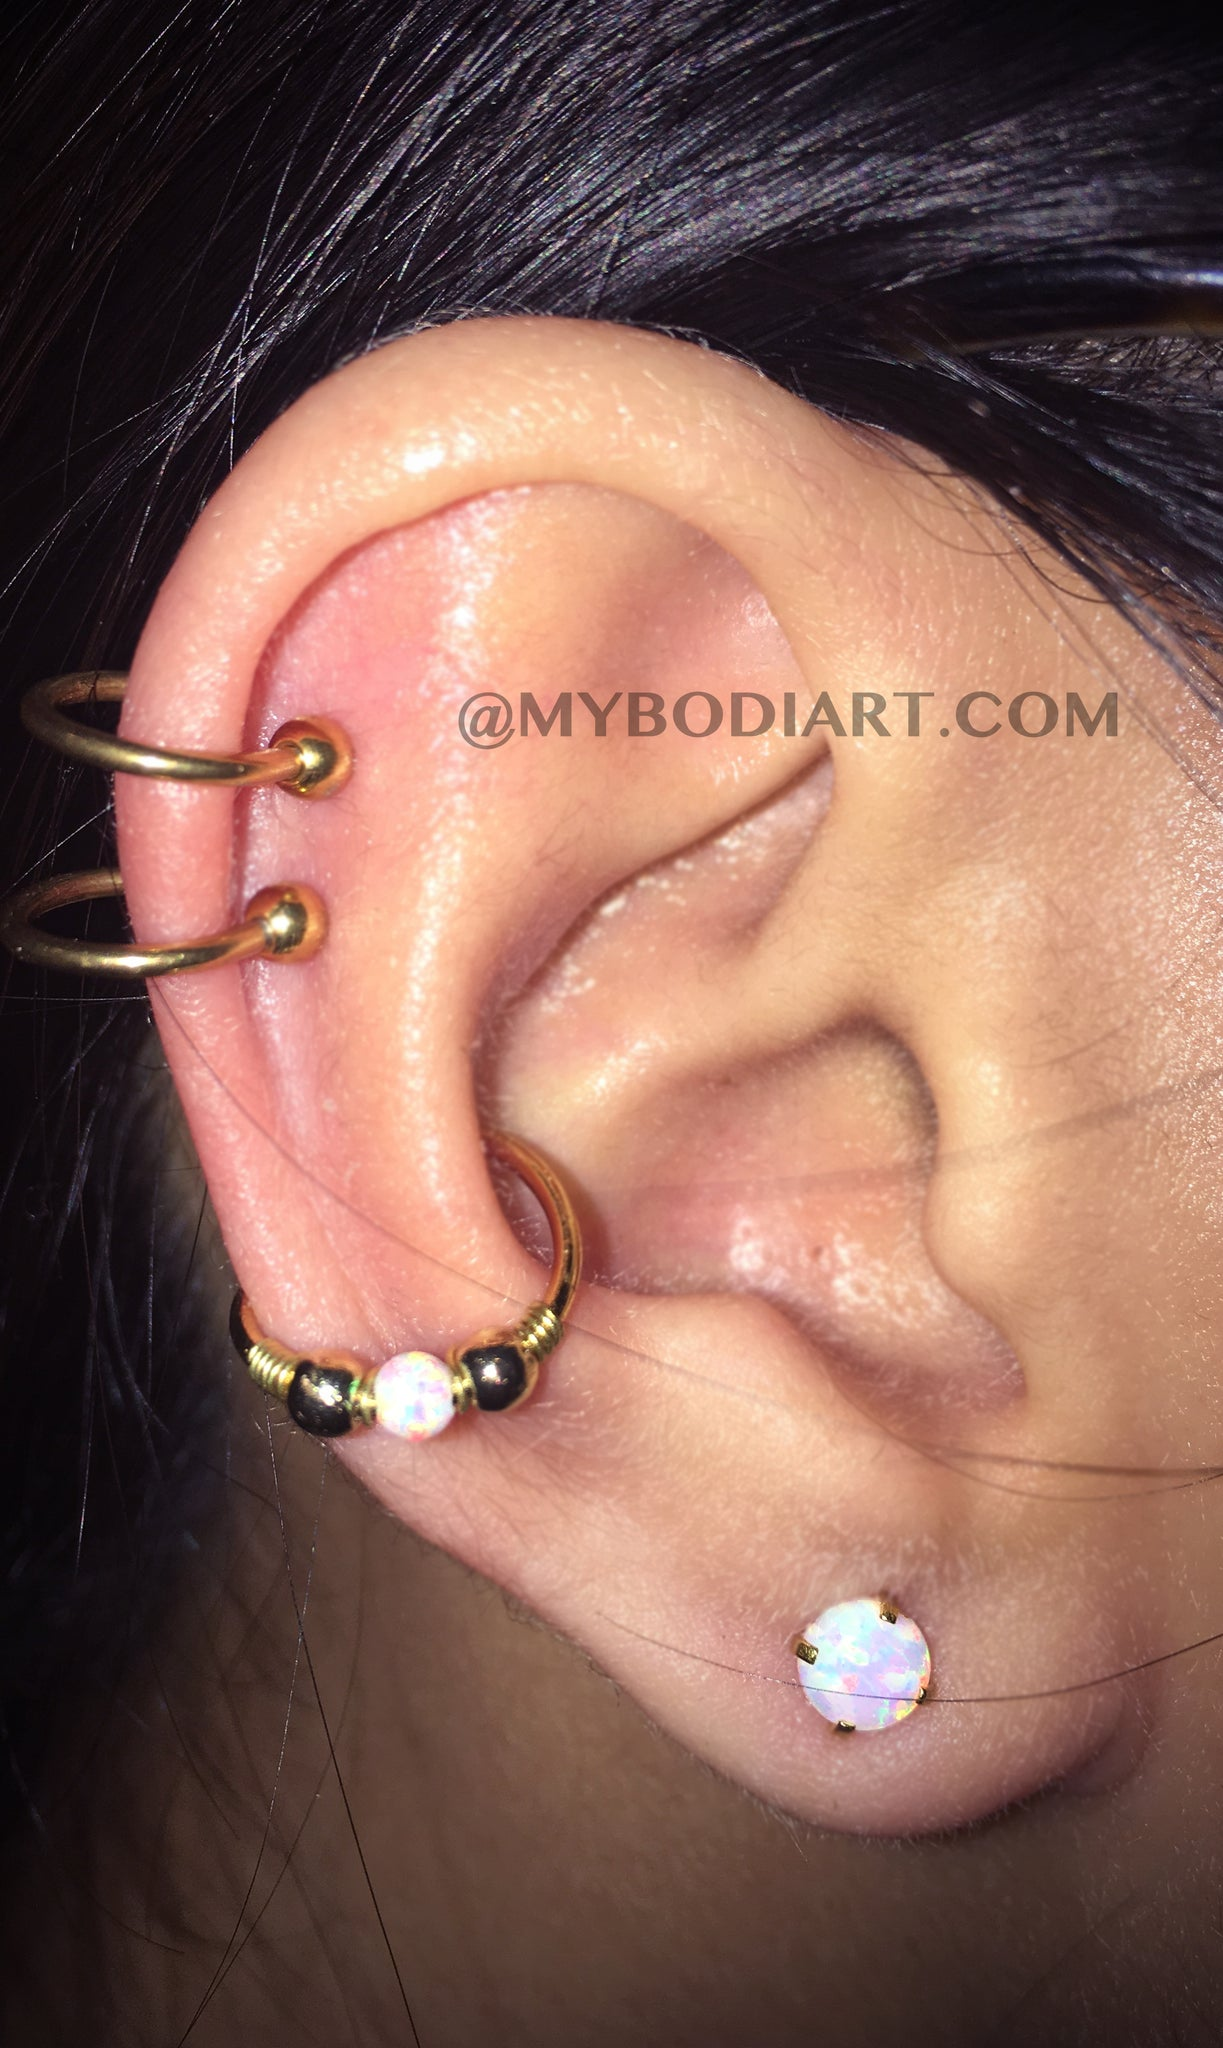 All the Way Around Multiple Ear Piercing Ideas - Double Cartilage Top Ear Rings - Conch Hoop - Opal Ear Lobe Studs - www.MyBodiArt.com